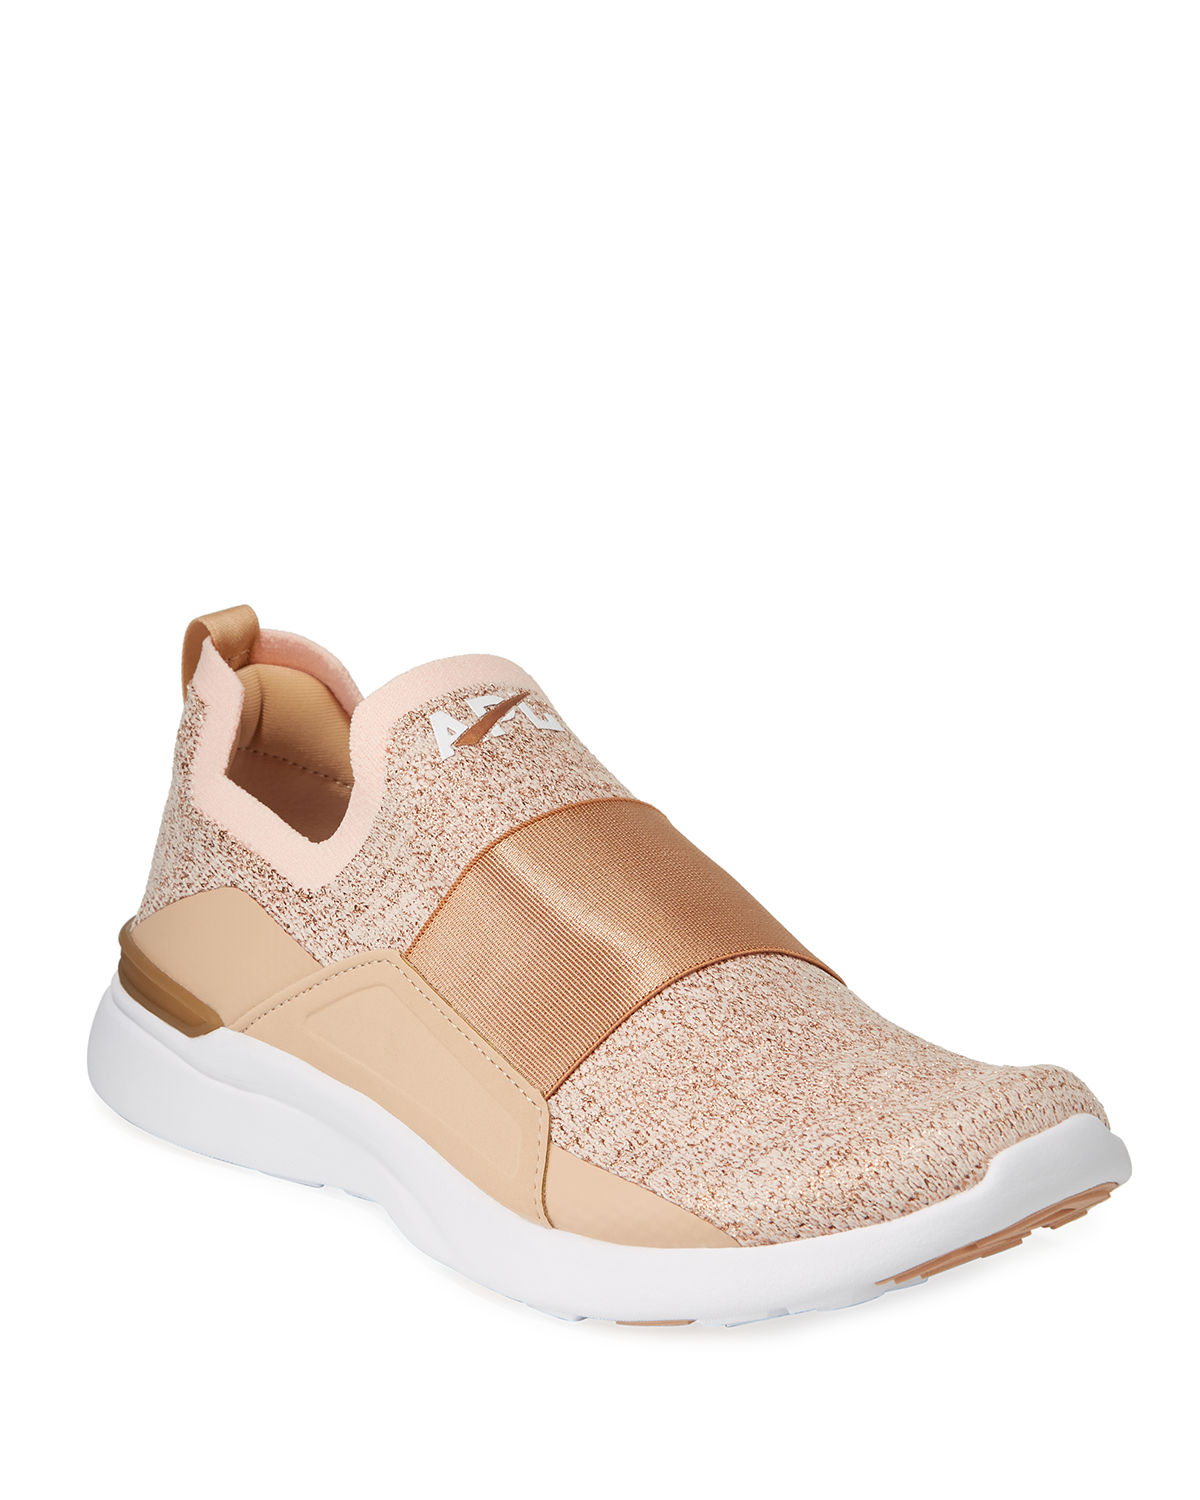 3f3d106f1a6 APL  Athletic Propulsion LabsTechloom Bliss Metallic Knit Slip-On Running  Sneakers